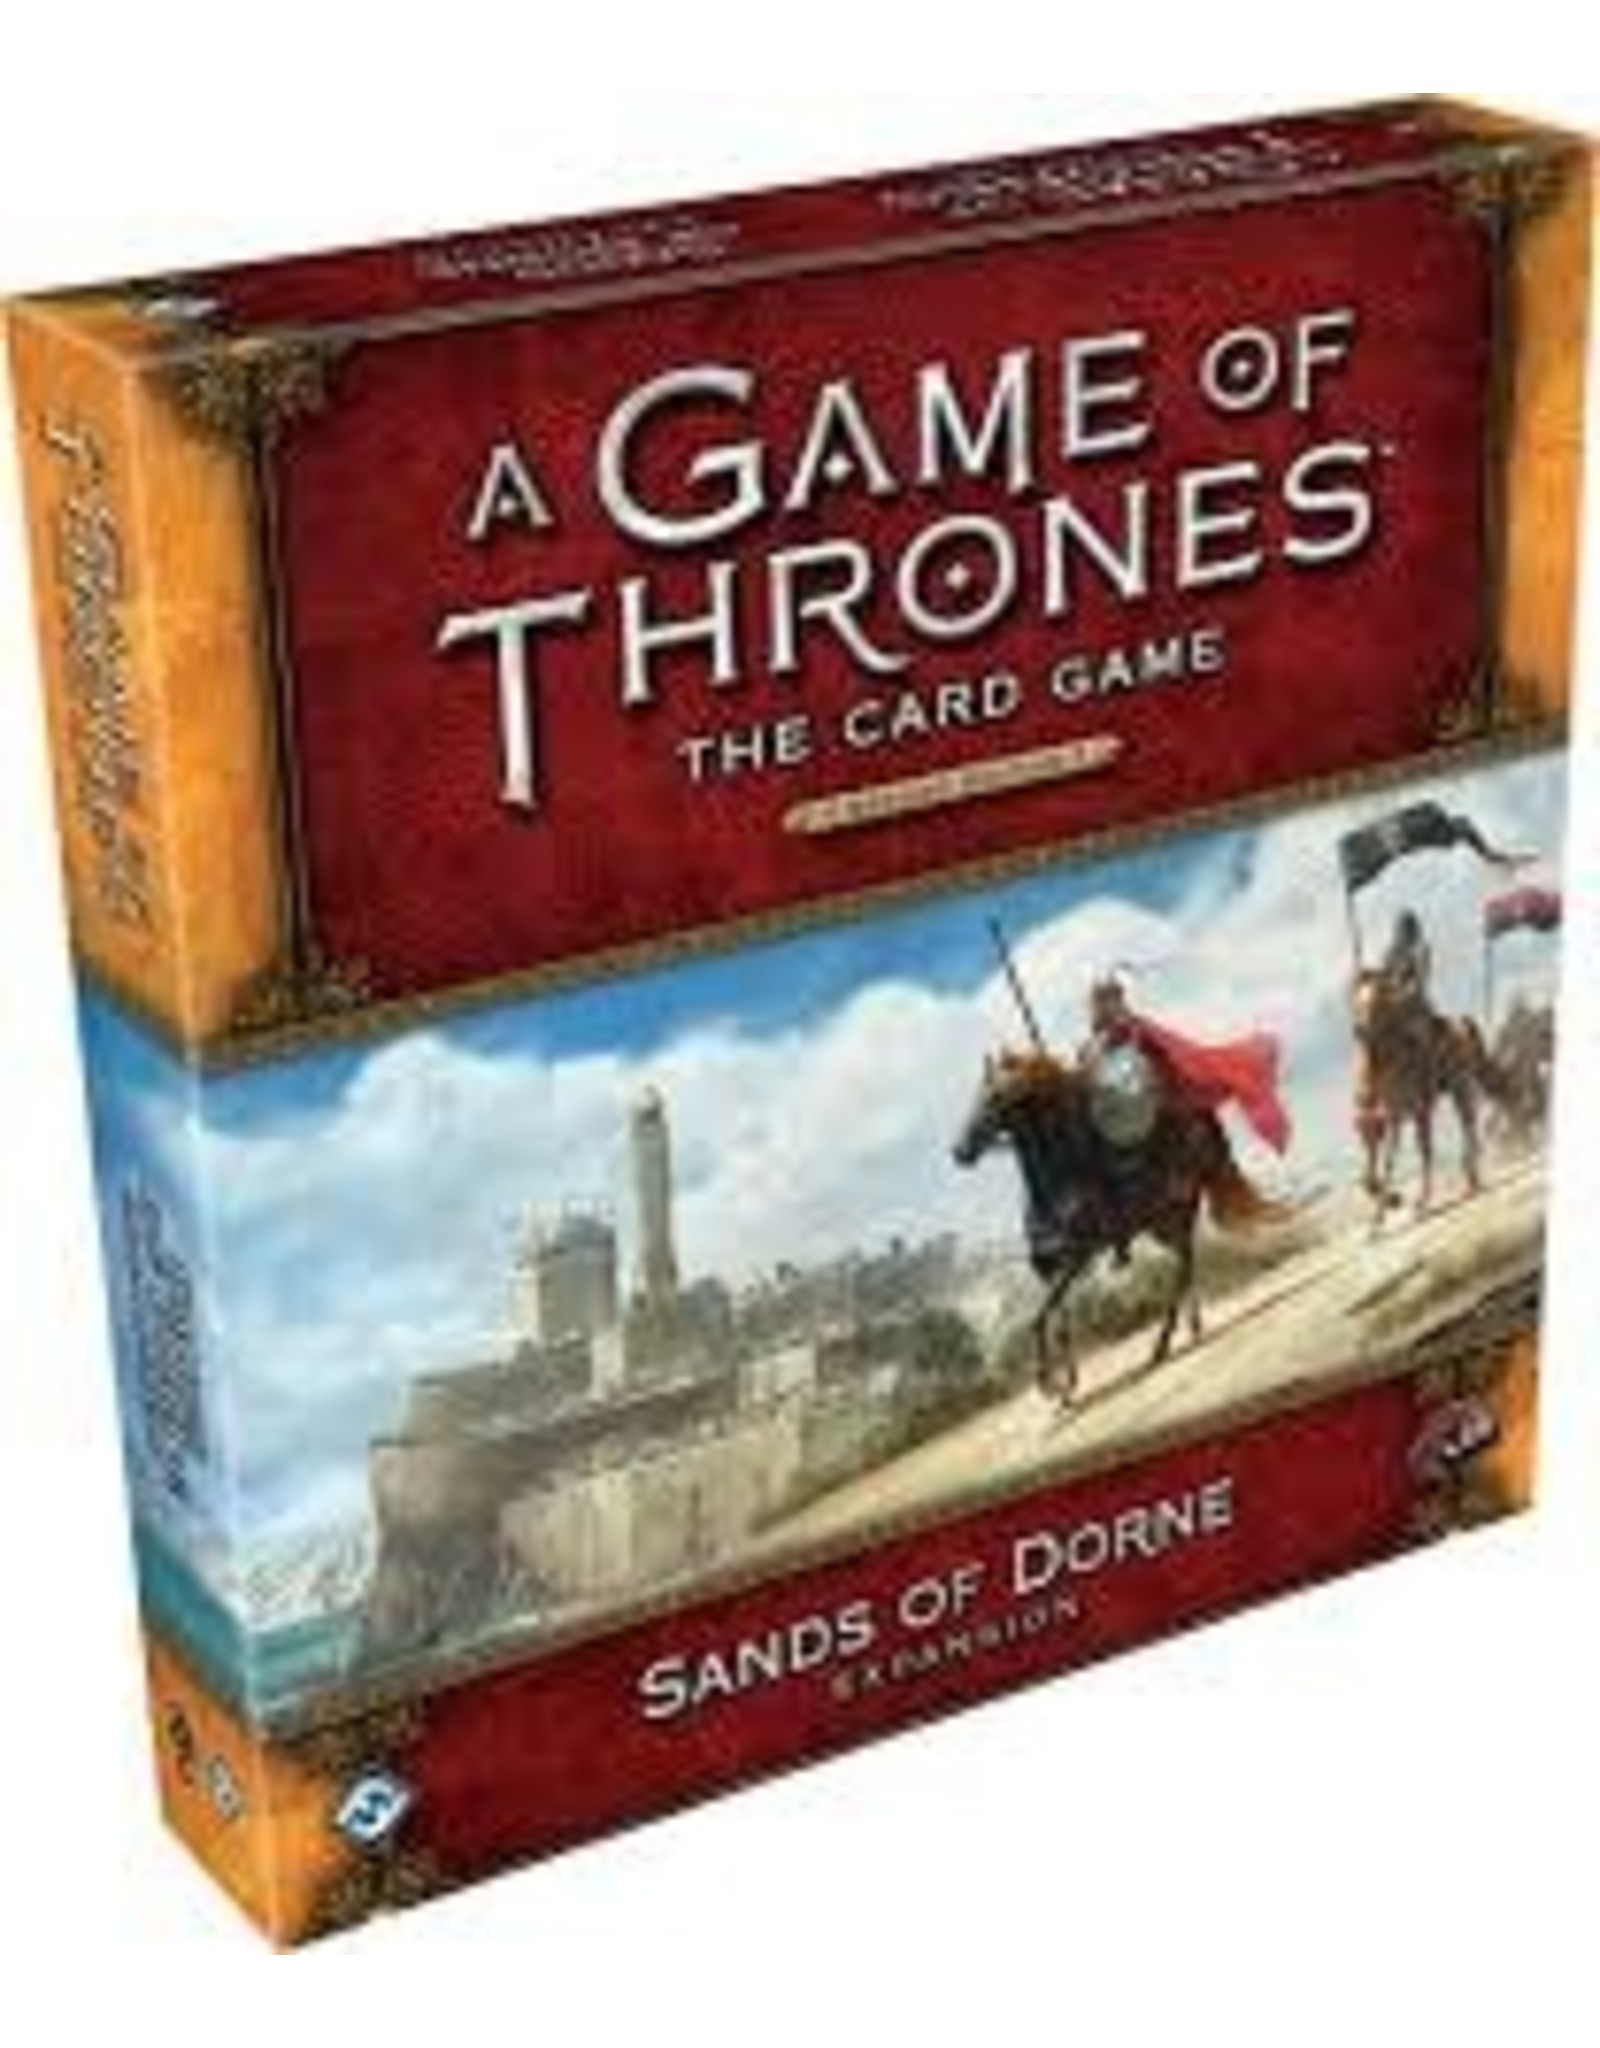 Game of Thrones LCG Sands of Dorne Expansion